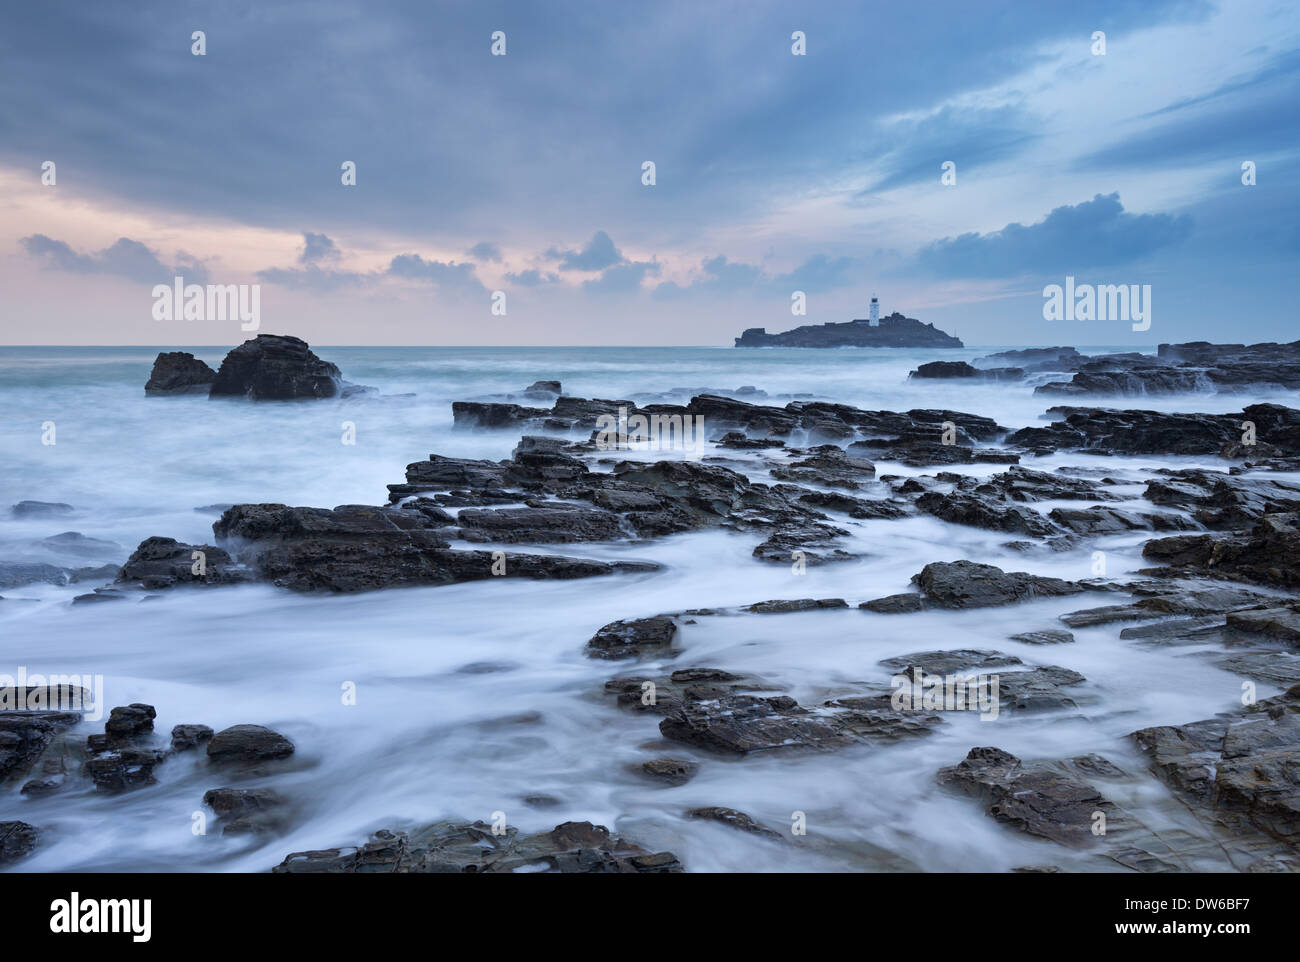 High Tide at Godrevy, looking towards Godrevy Lighthouse, St Ives Bay, Cornwall, England. Winter (January) 2014. - Stock Image